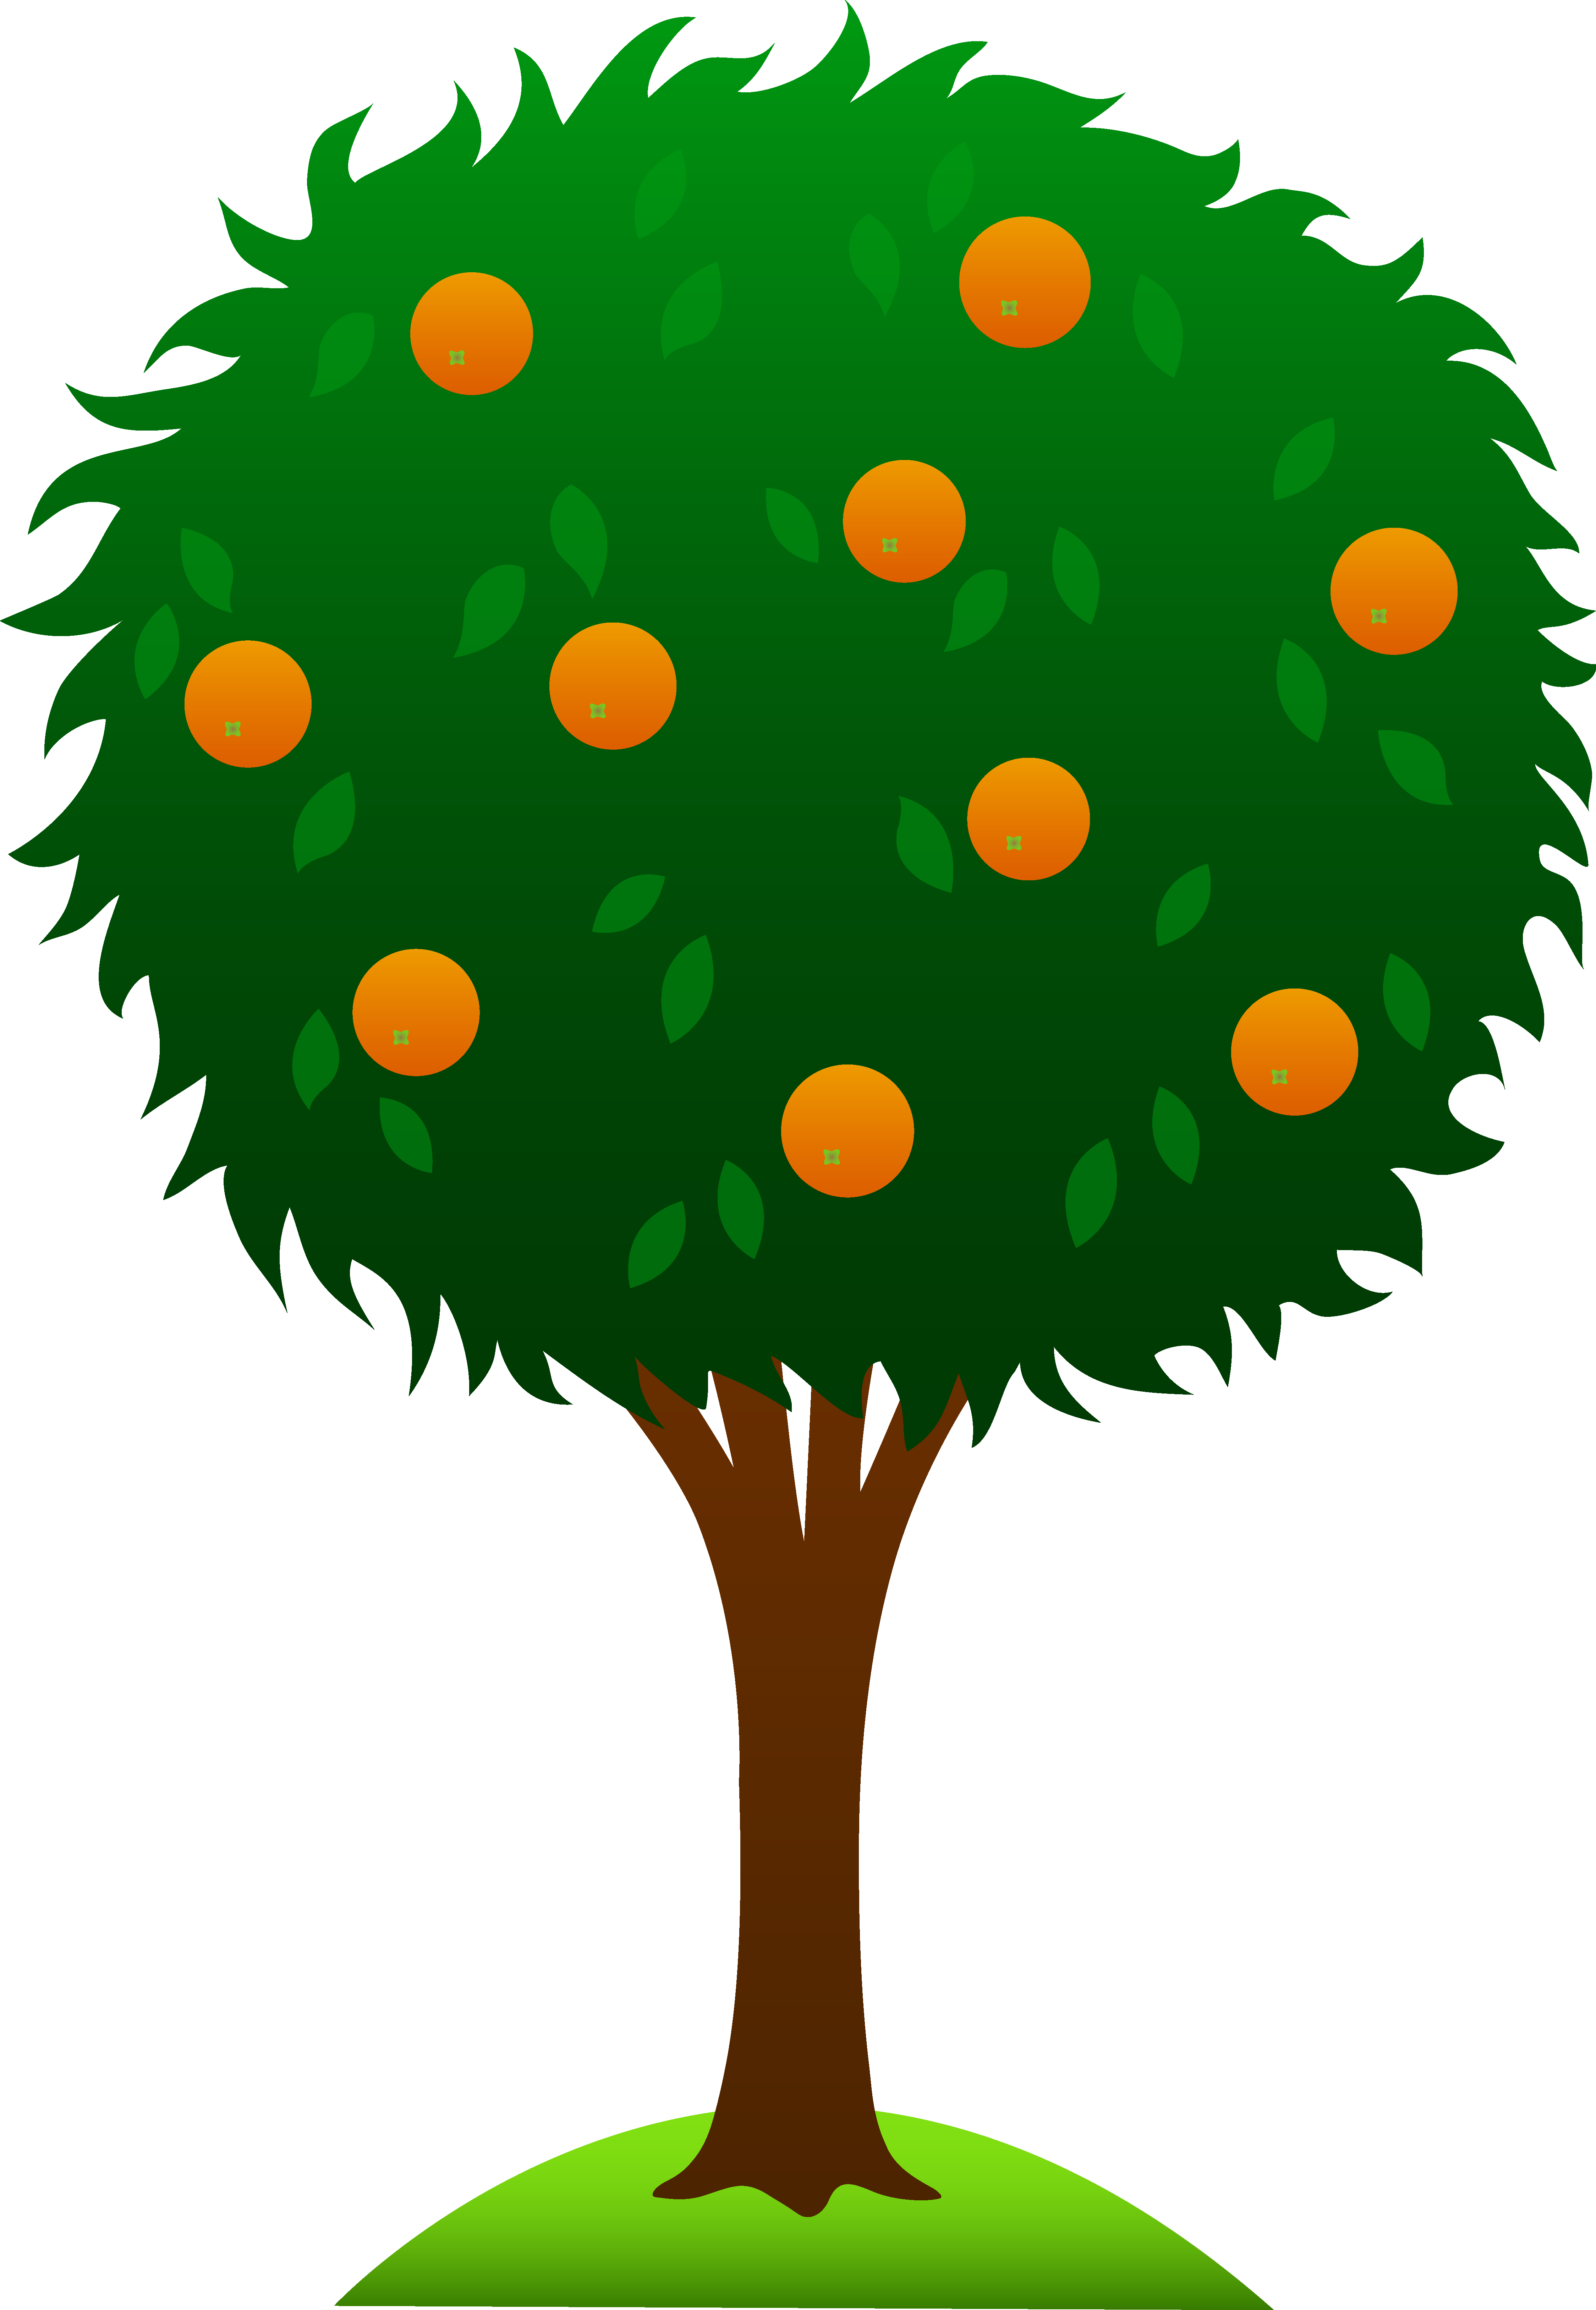 Free tree images download. Clipart trees pencil